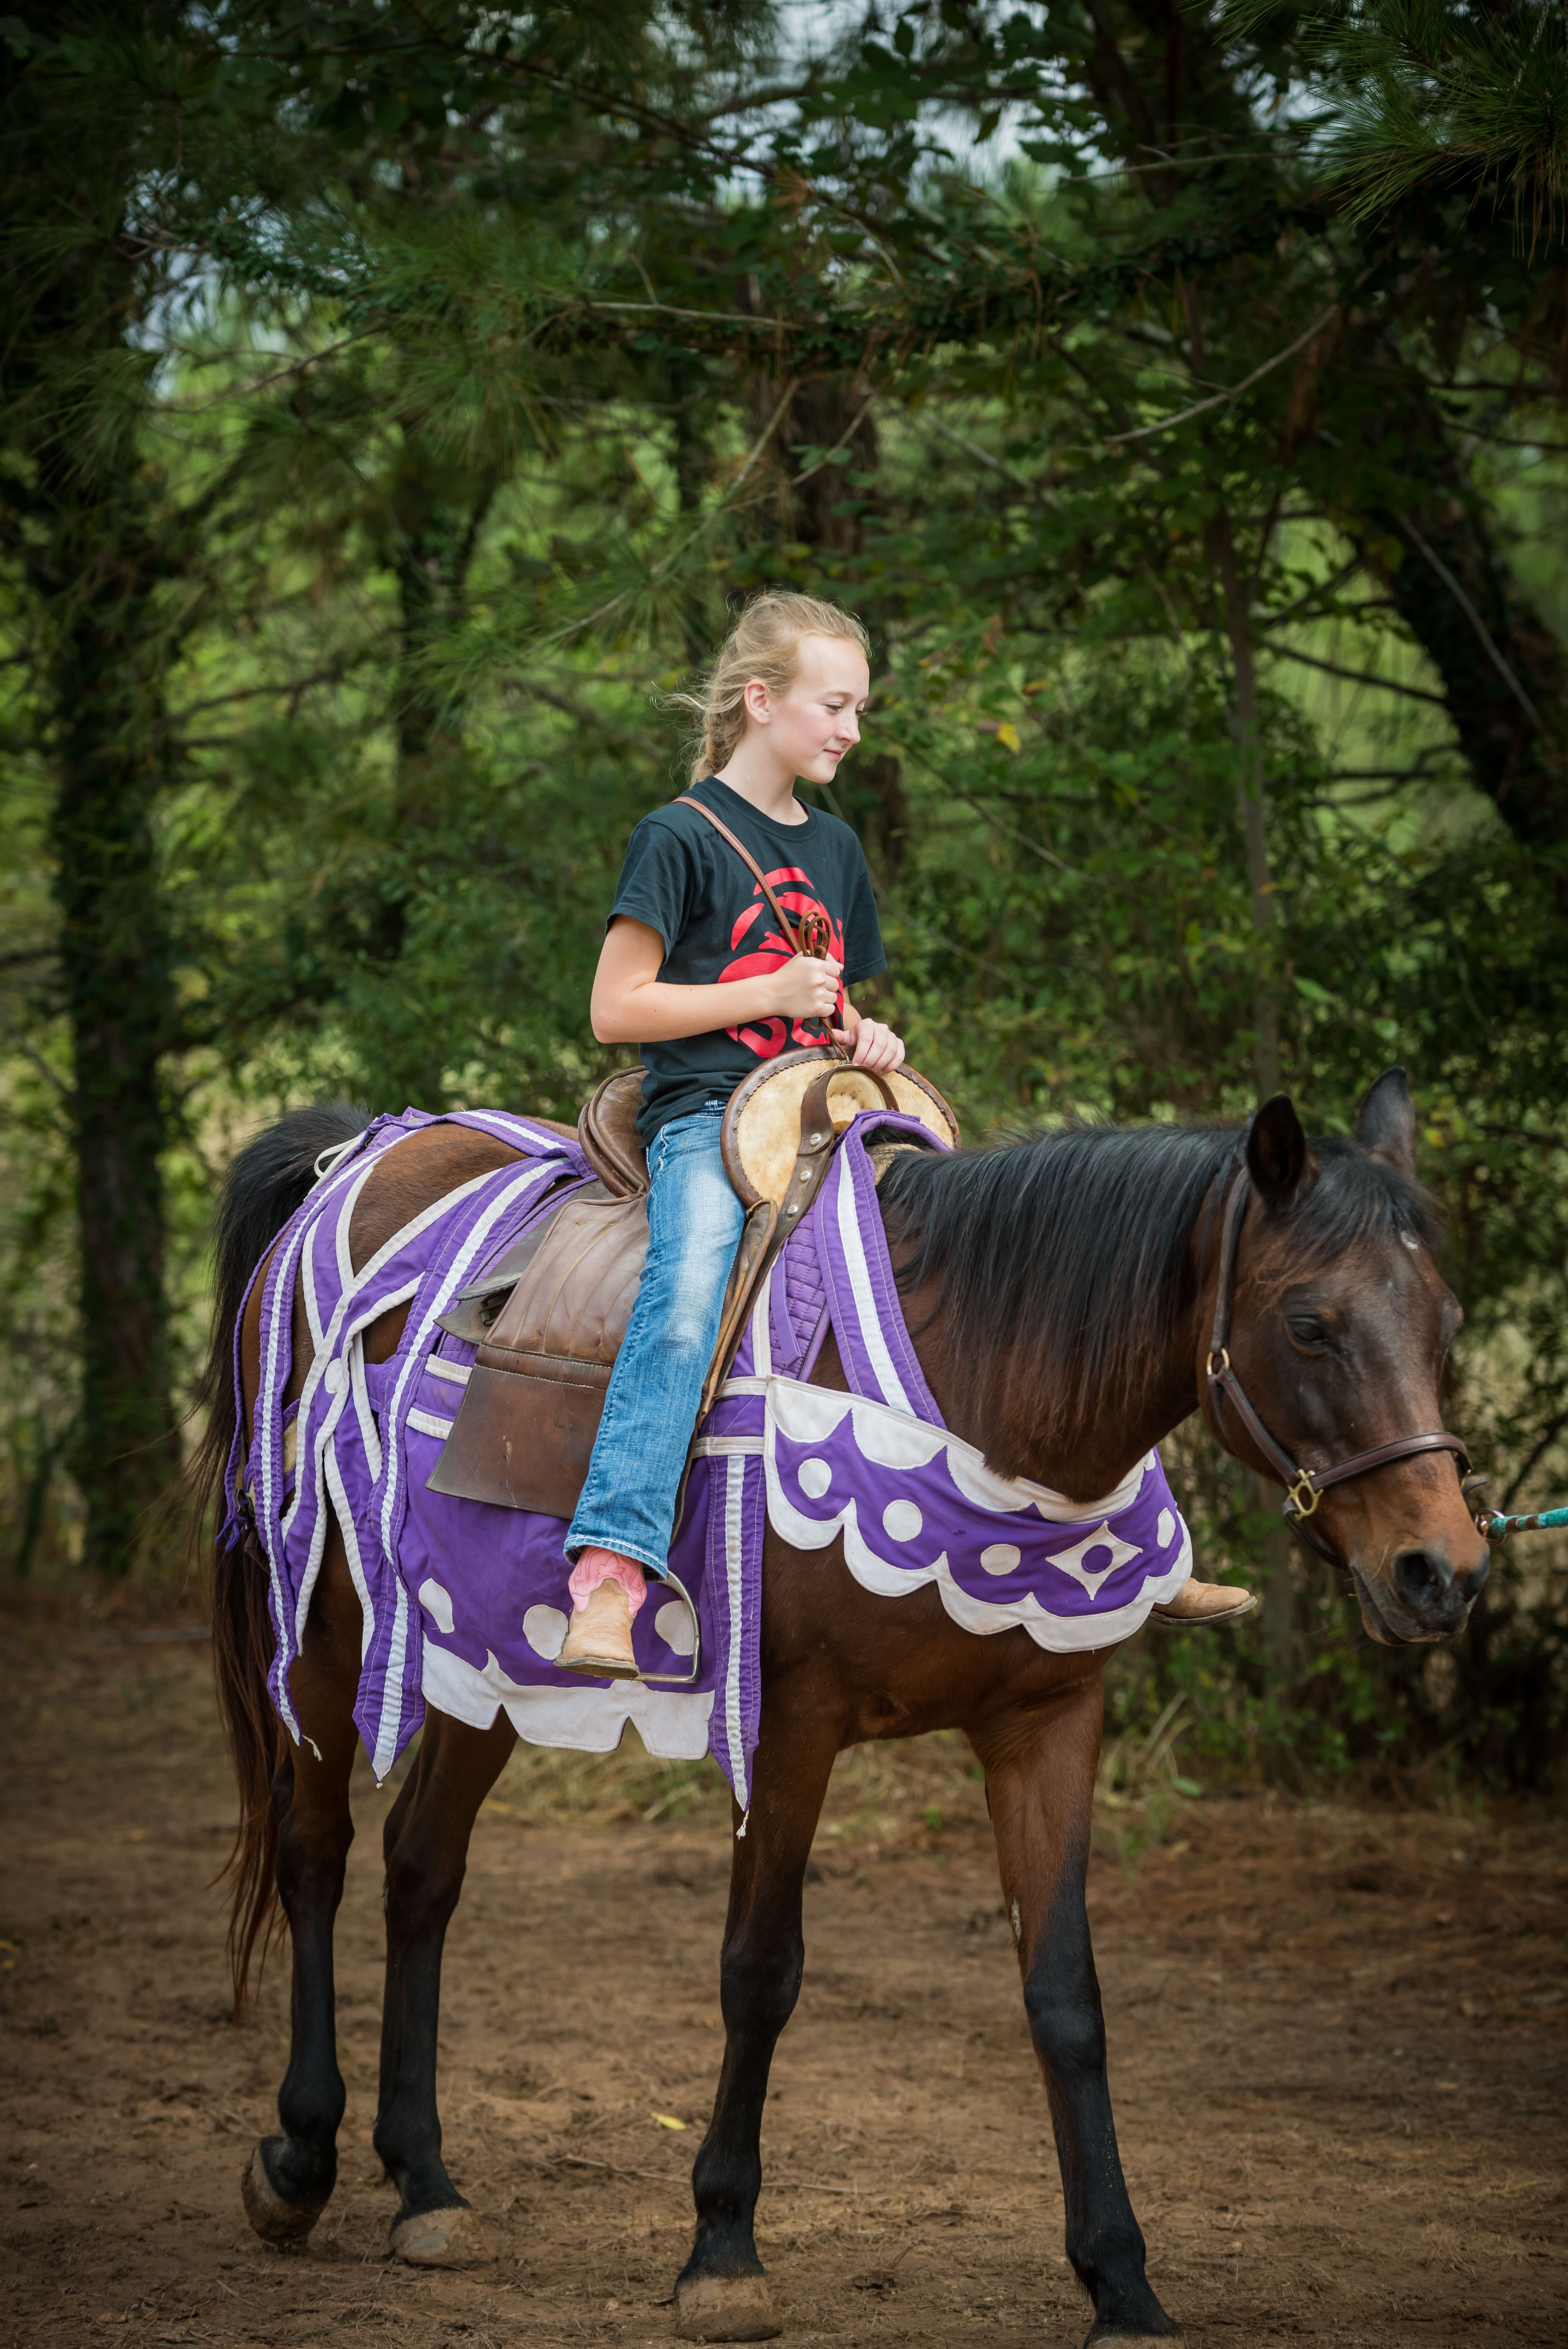 A student has an opportunity to ride near the Joust Arena.